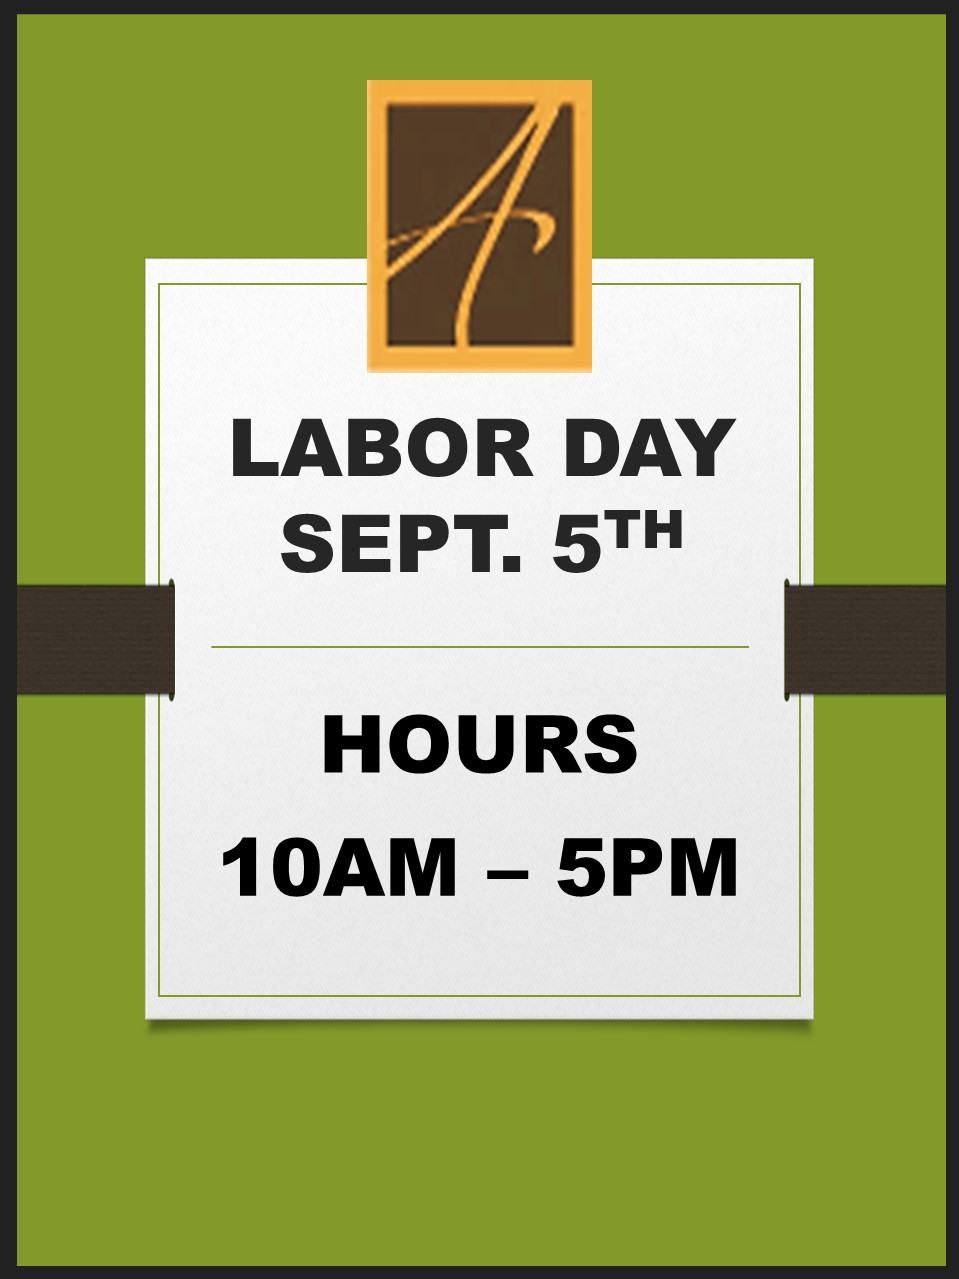 ATS Labor Day Hours